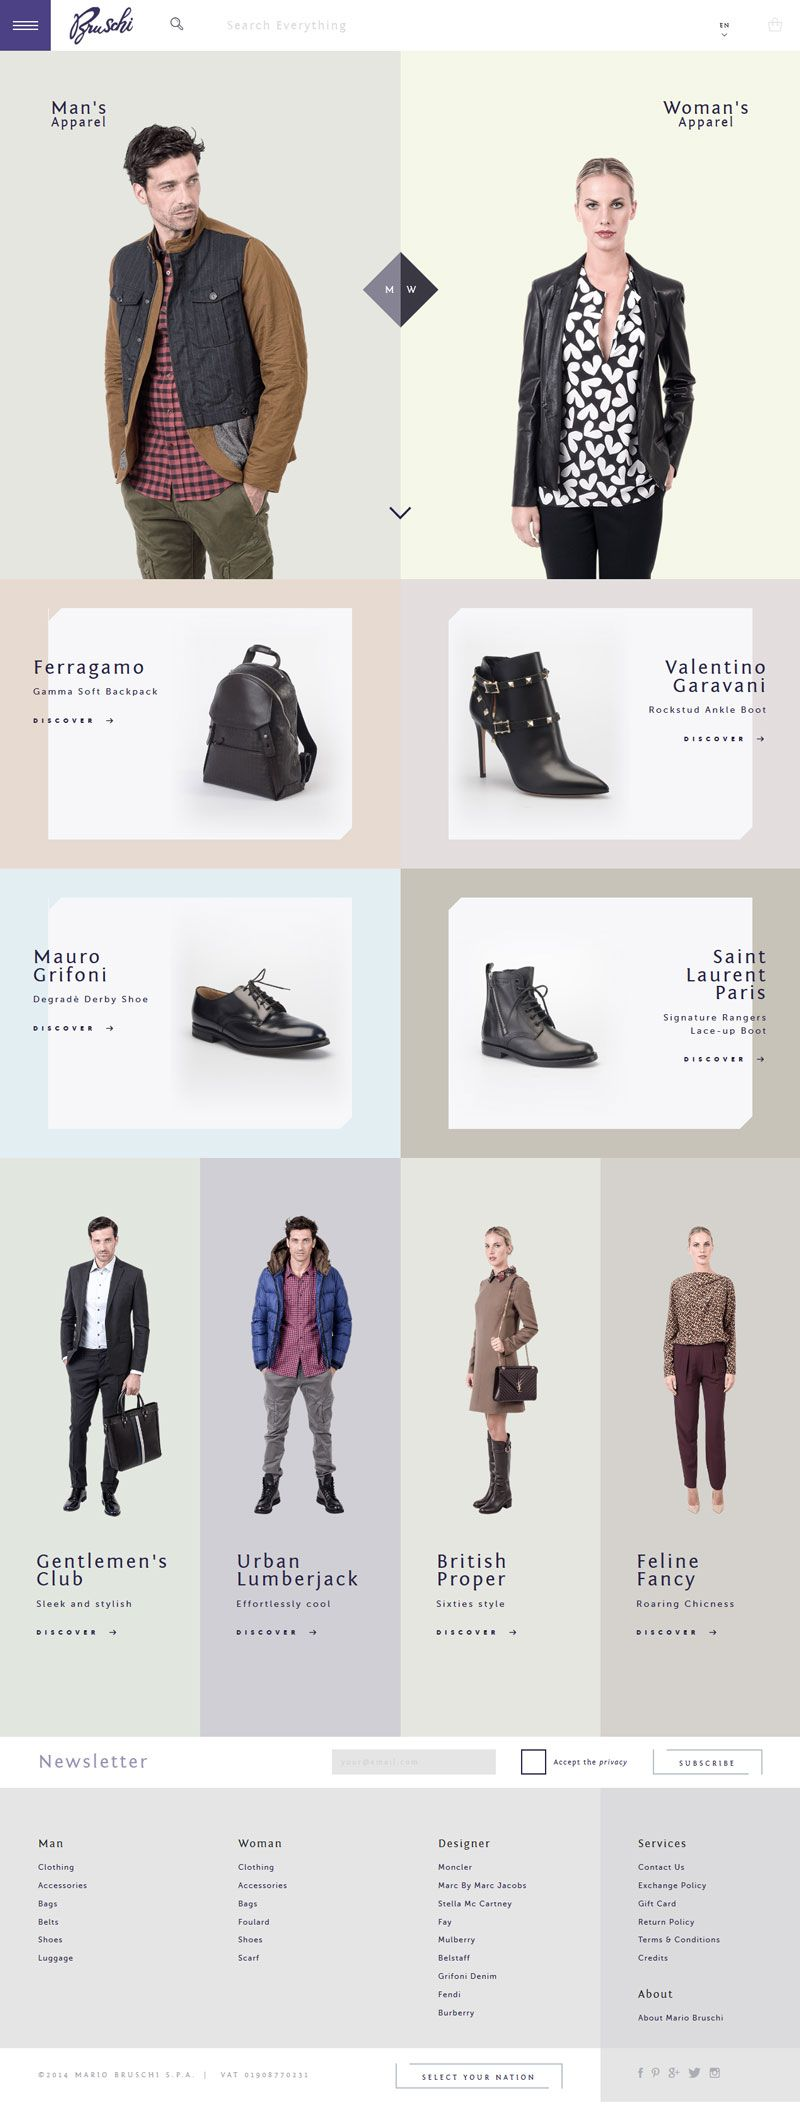 Flat Design Website; Example; Category: Inspiration; Name Site: Mario Bruschi; Type Website: Clothing, shoes, accessories and bags; Creative; Pastel Colors